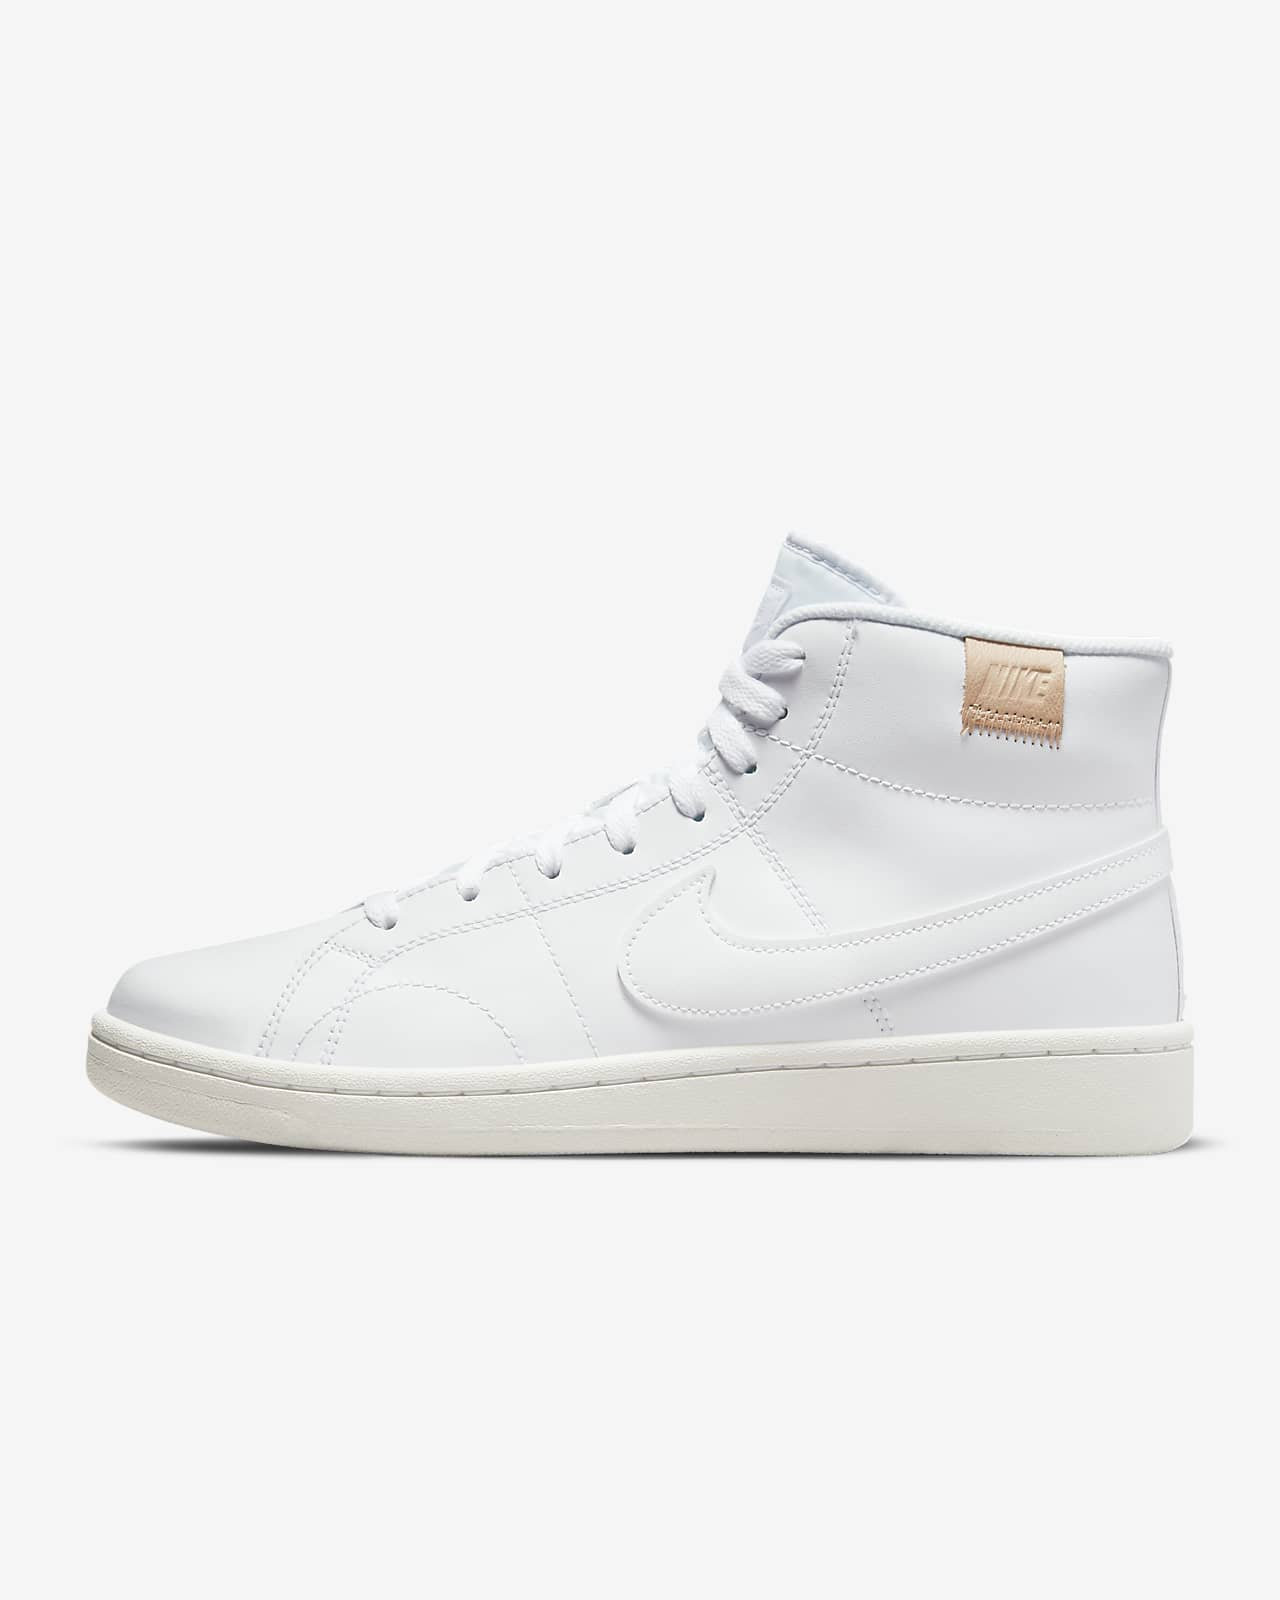 Chaussure Nike Court Royale 2 Mid pour Femme